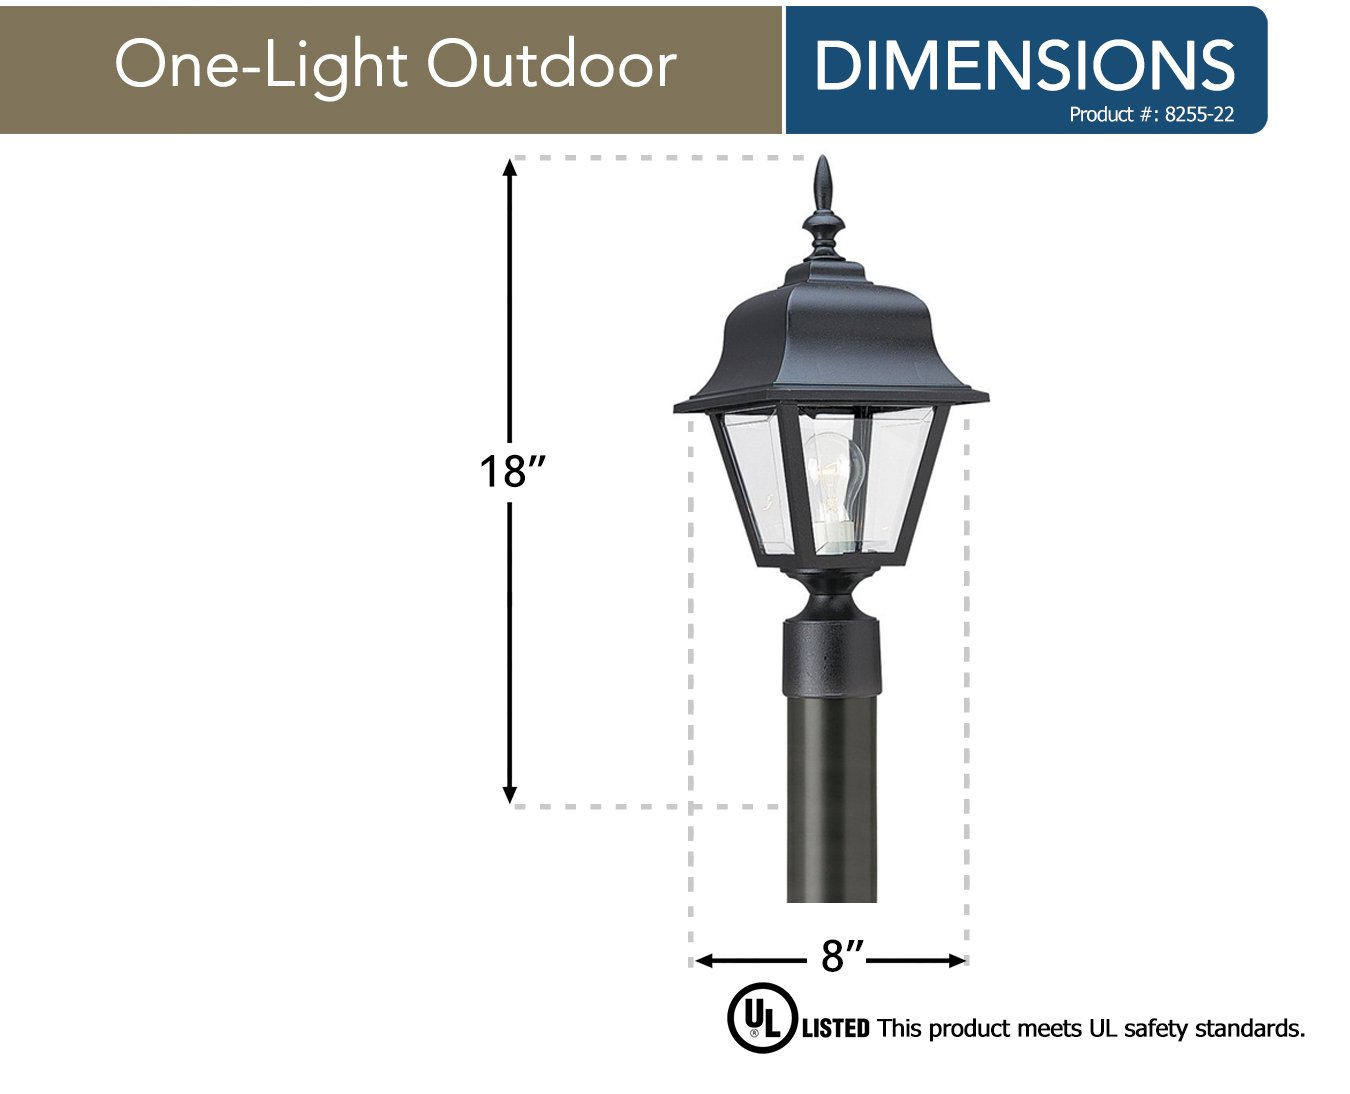 Sea Gull Lighting 8255-12 One-Light Outdoor Post Lantern with Clear Beveled Acrylic Panels, Black Finish by Sea Gull Lighting (Image #2)